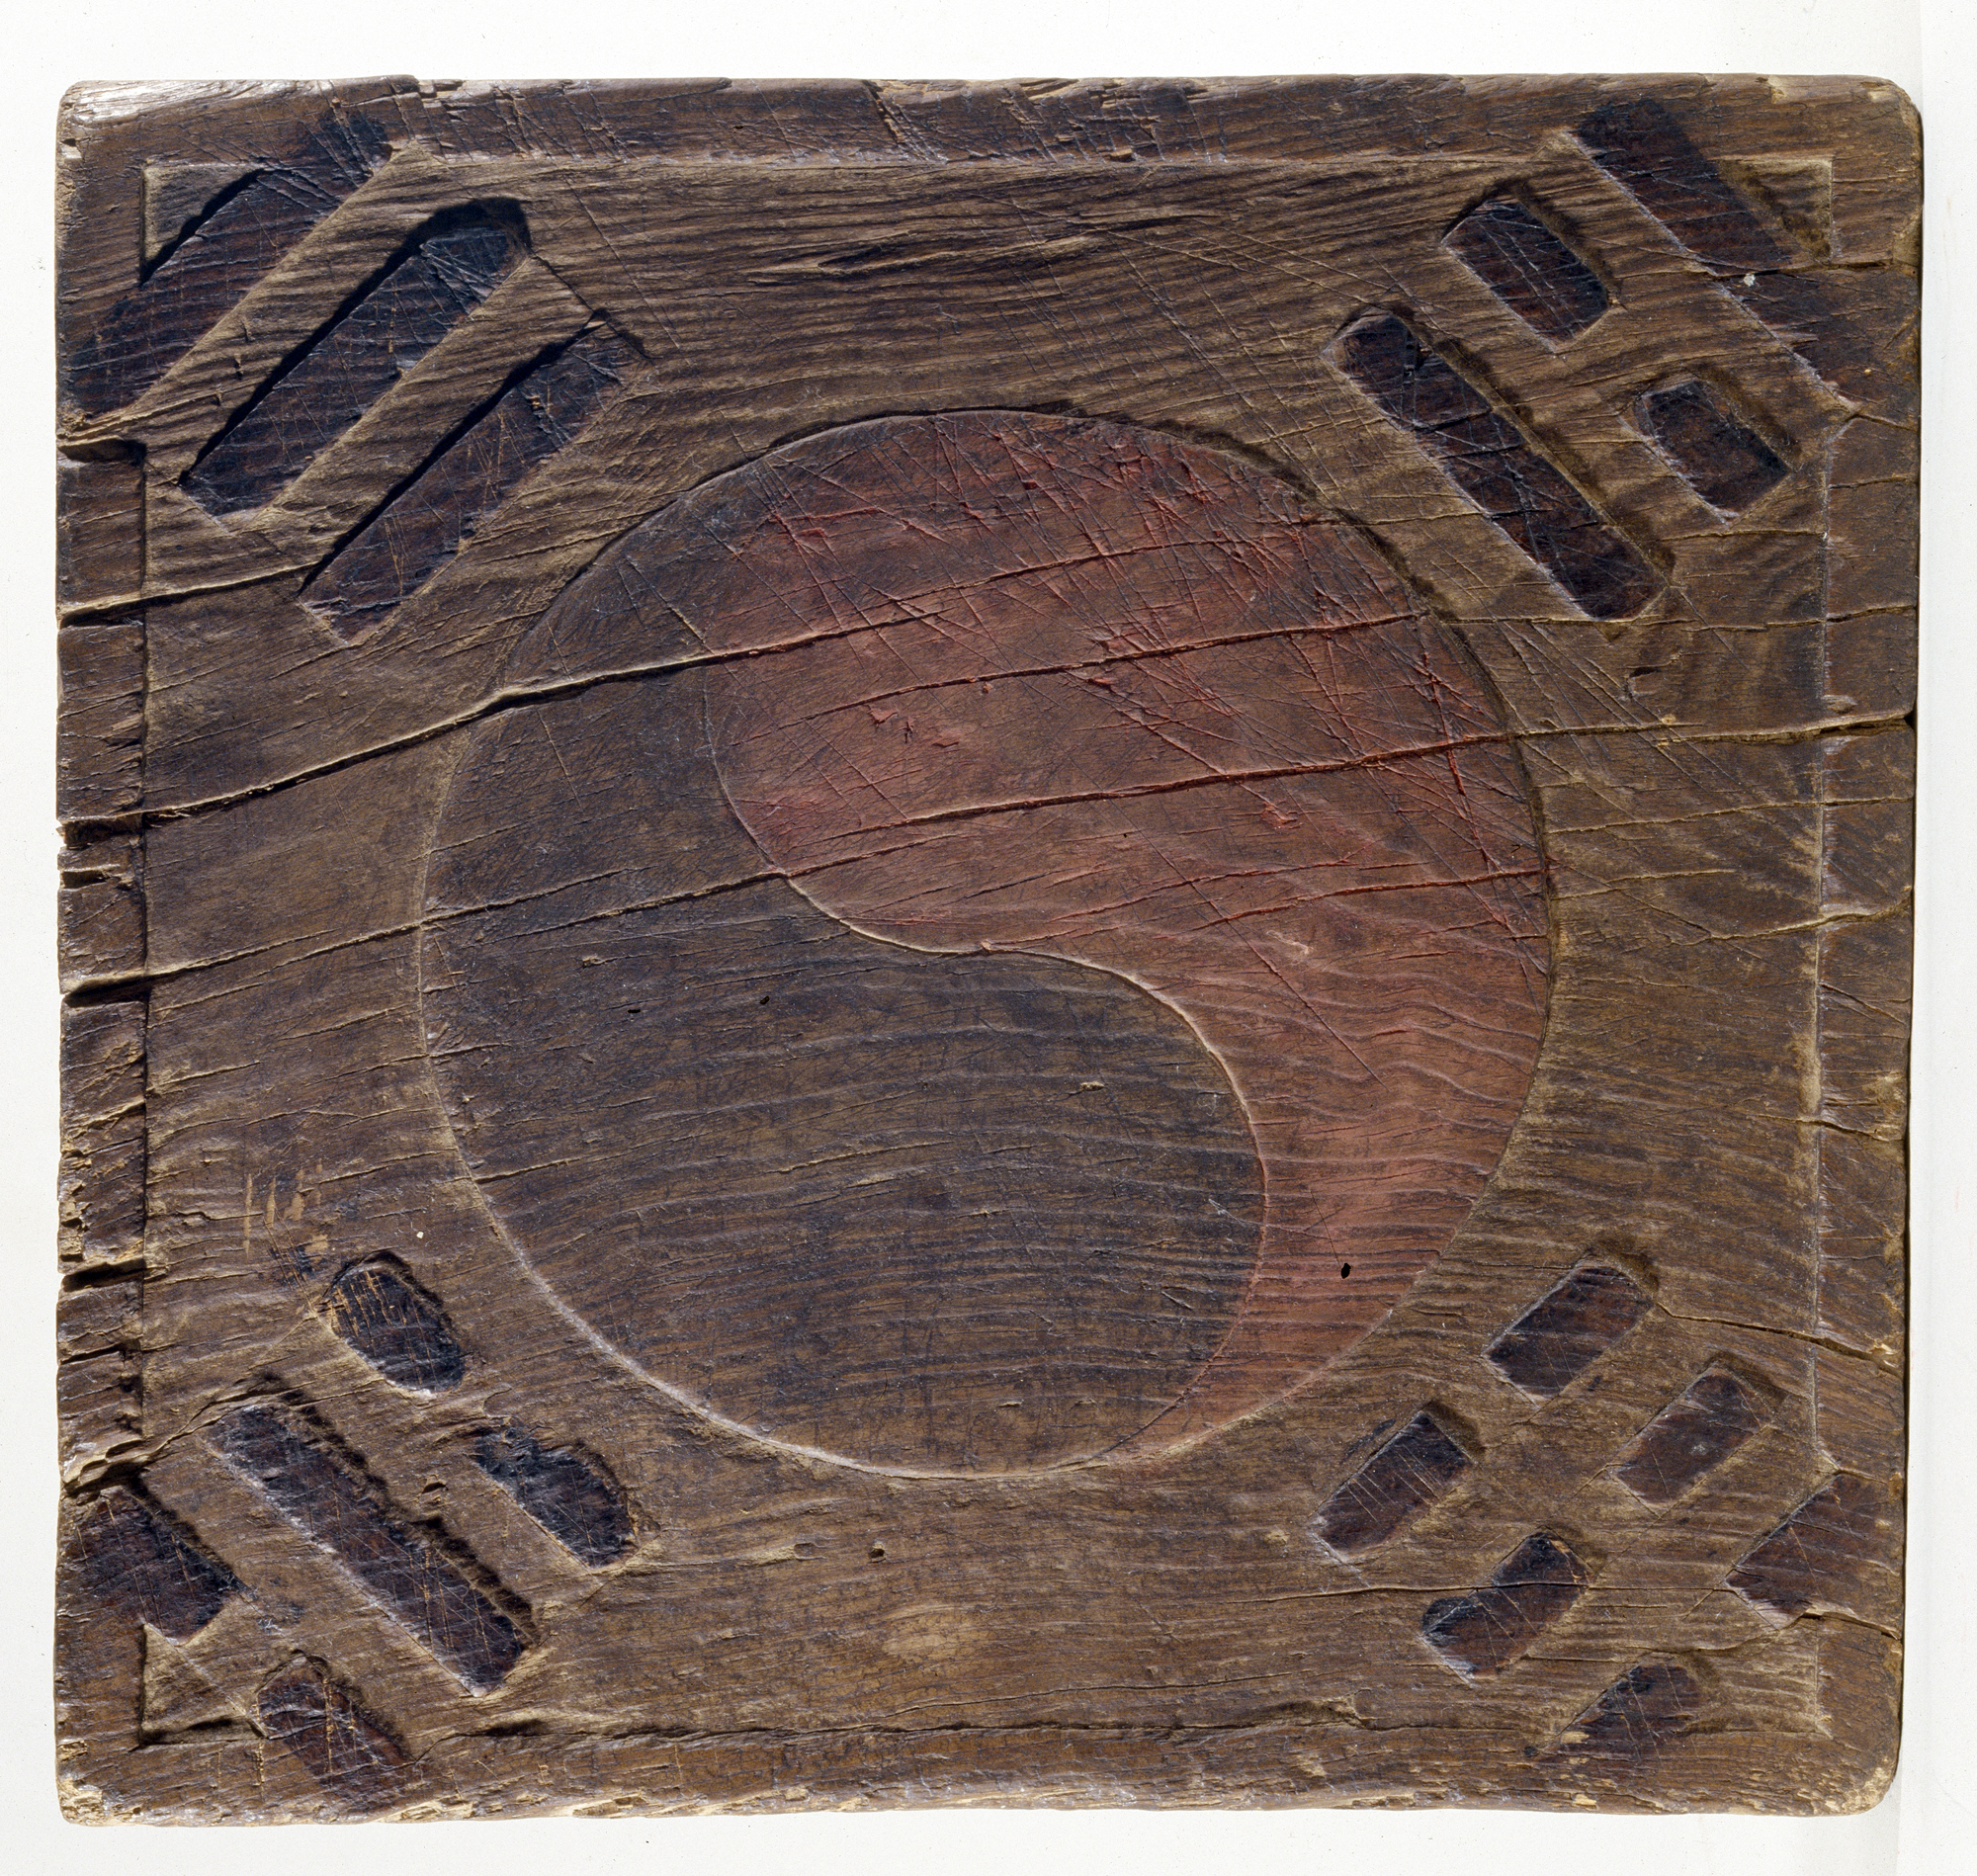 Taegukgi Wood Engraving Block.   Korea, 1919. Etched on wood block. 12.6 x 11.8 x 2.6 in (32×30 × 6.5 cm).